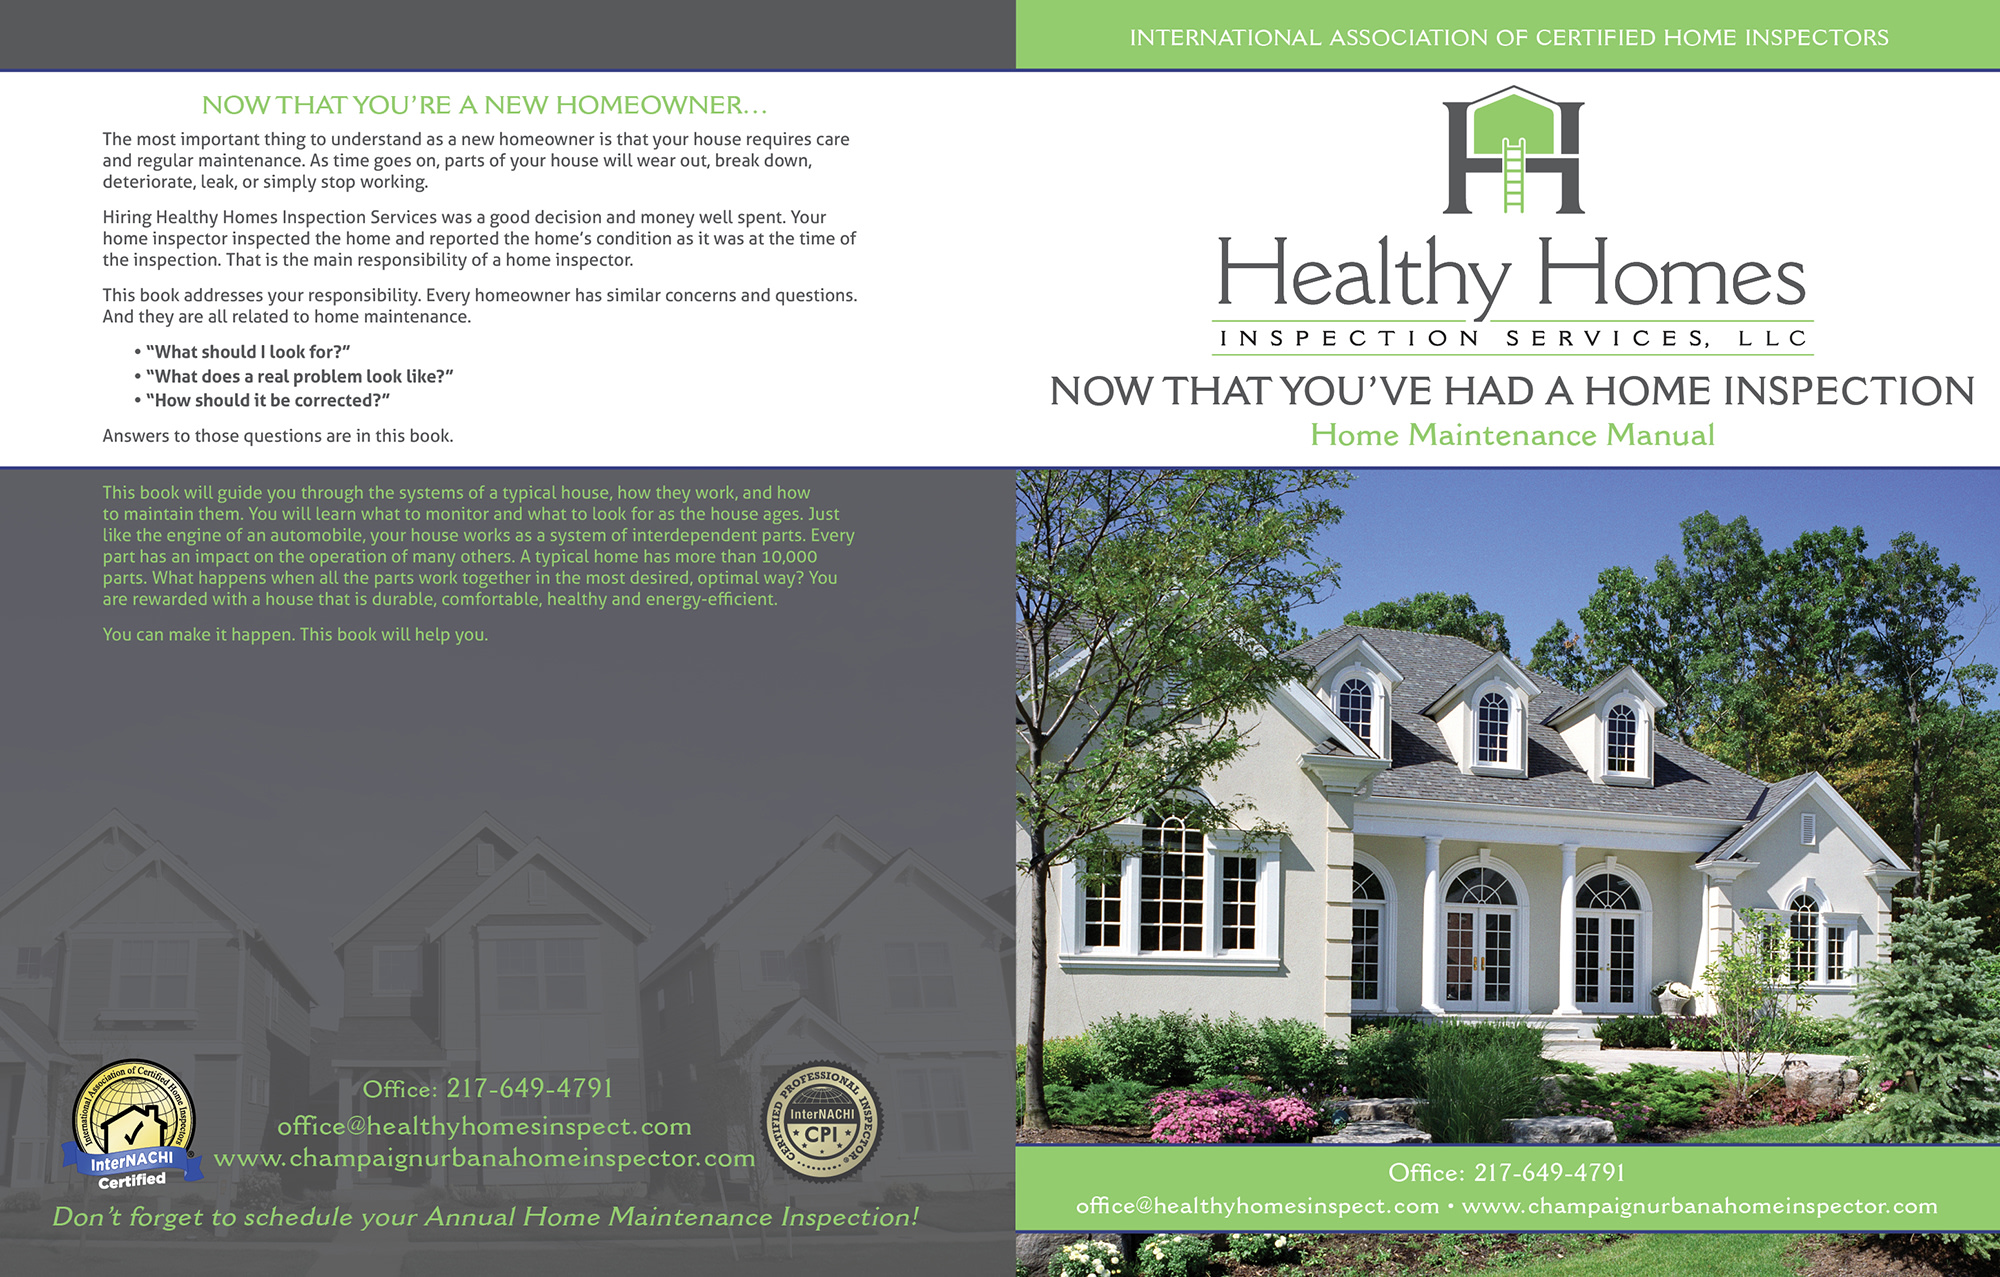 Custom Home Maintenance Book for Healthy Homes Inspection Services.